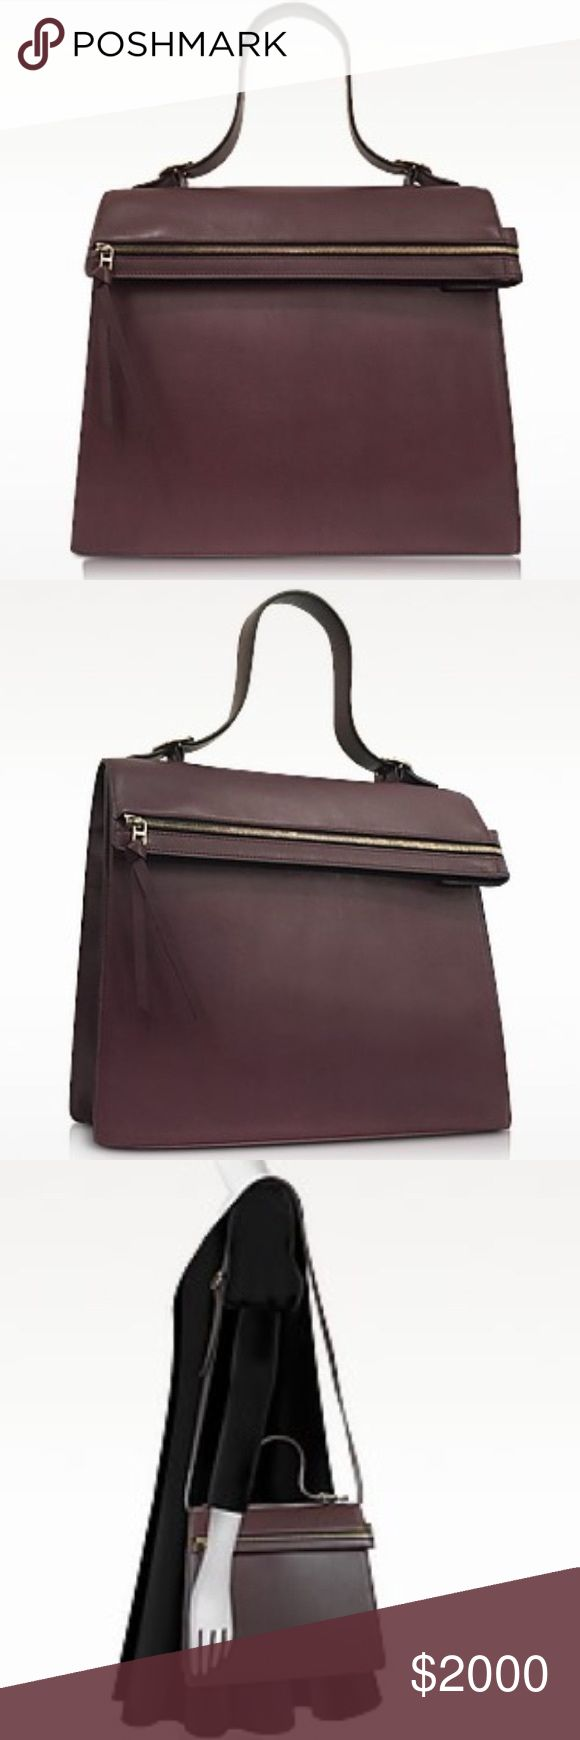 """VICTORIA BECKHAM Topaz Burgundy Leather Handbag Topaz Burgundy Leather Handbag crafted in natural smooth calfskin has clean lines and a contemporary design that looks great paired with a pencil skirt or pant suit. Featuring flap top closure, single top handle, detachable and adjustable shoulder strap, internal zip pocket, metal zip on front flap and gold tone hardware. Signature dust bag included. Made in Italy.Calfskin Width12.60"""" 